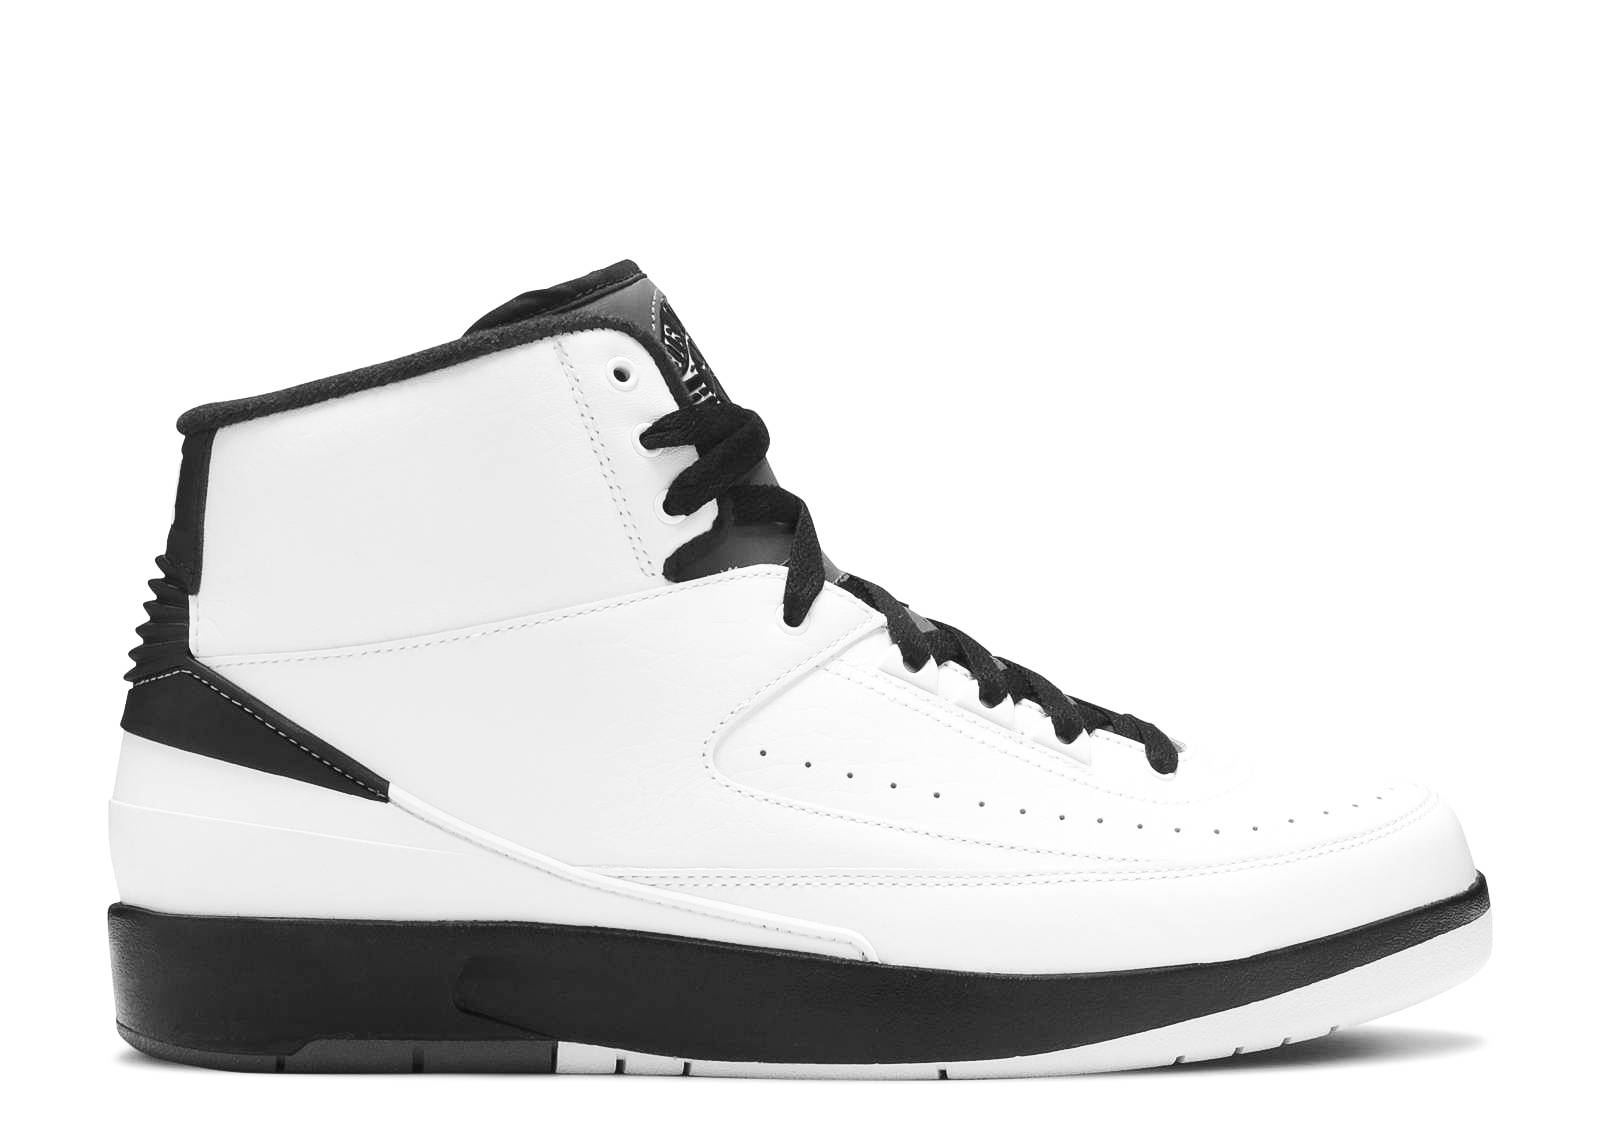 online store fb851 c73a9 Air Jordan 2 (II) Shoes - Nike   Flight Club